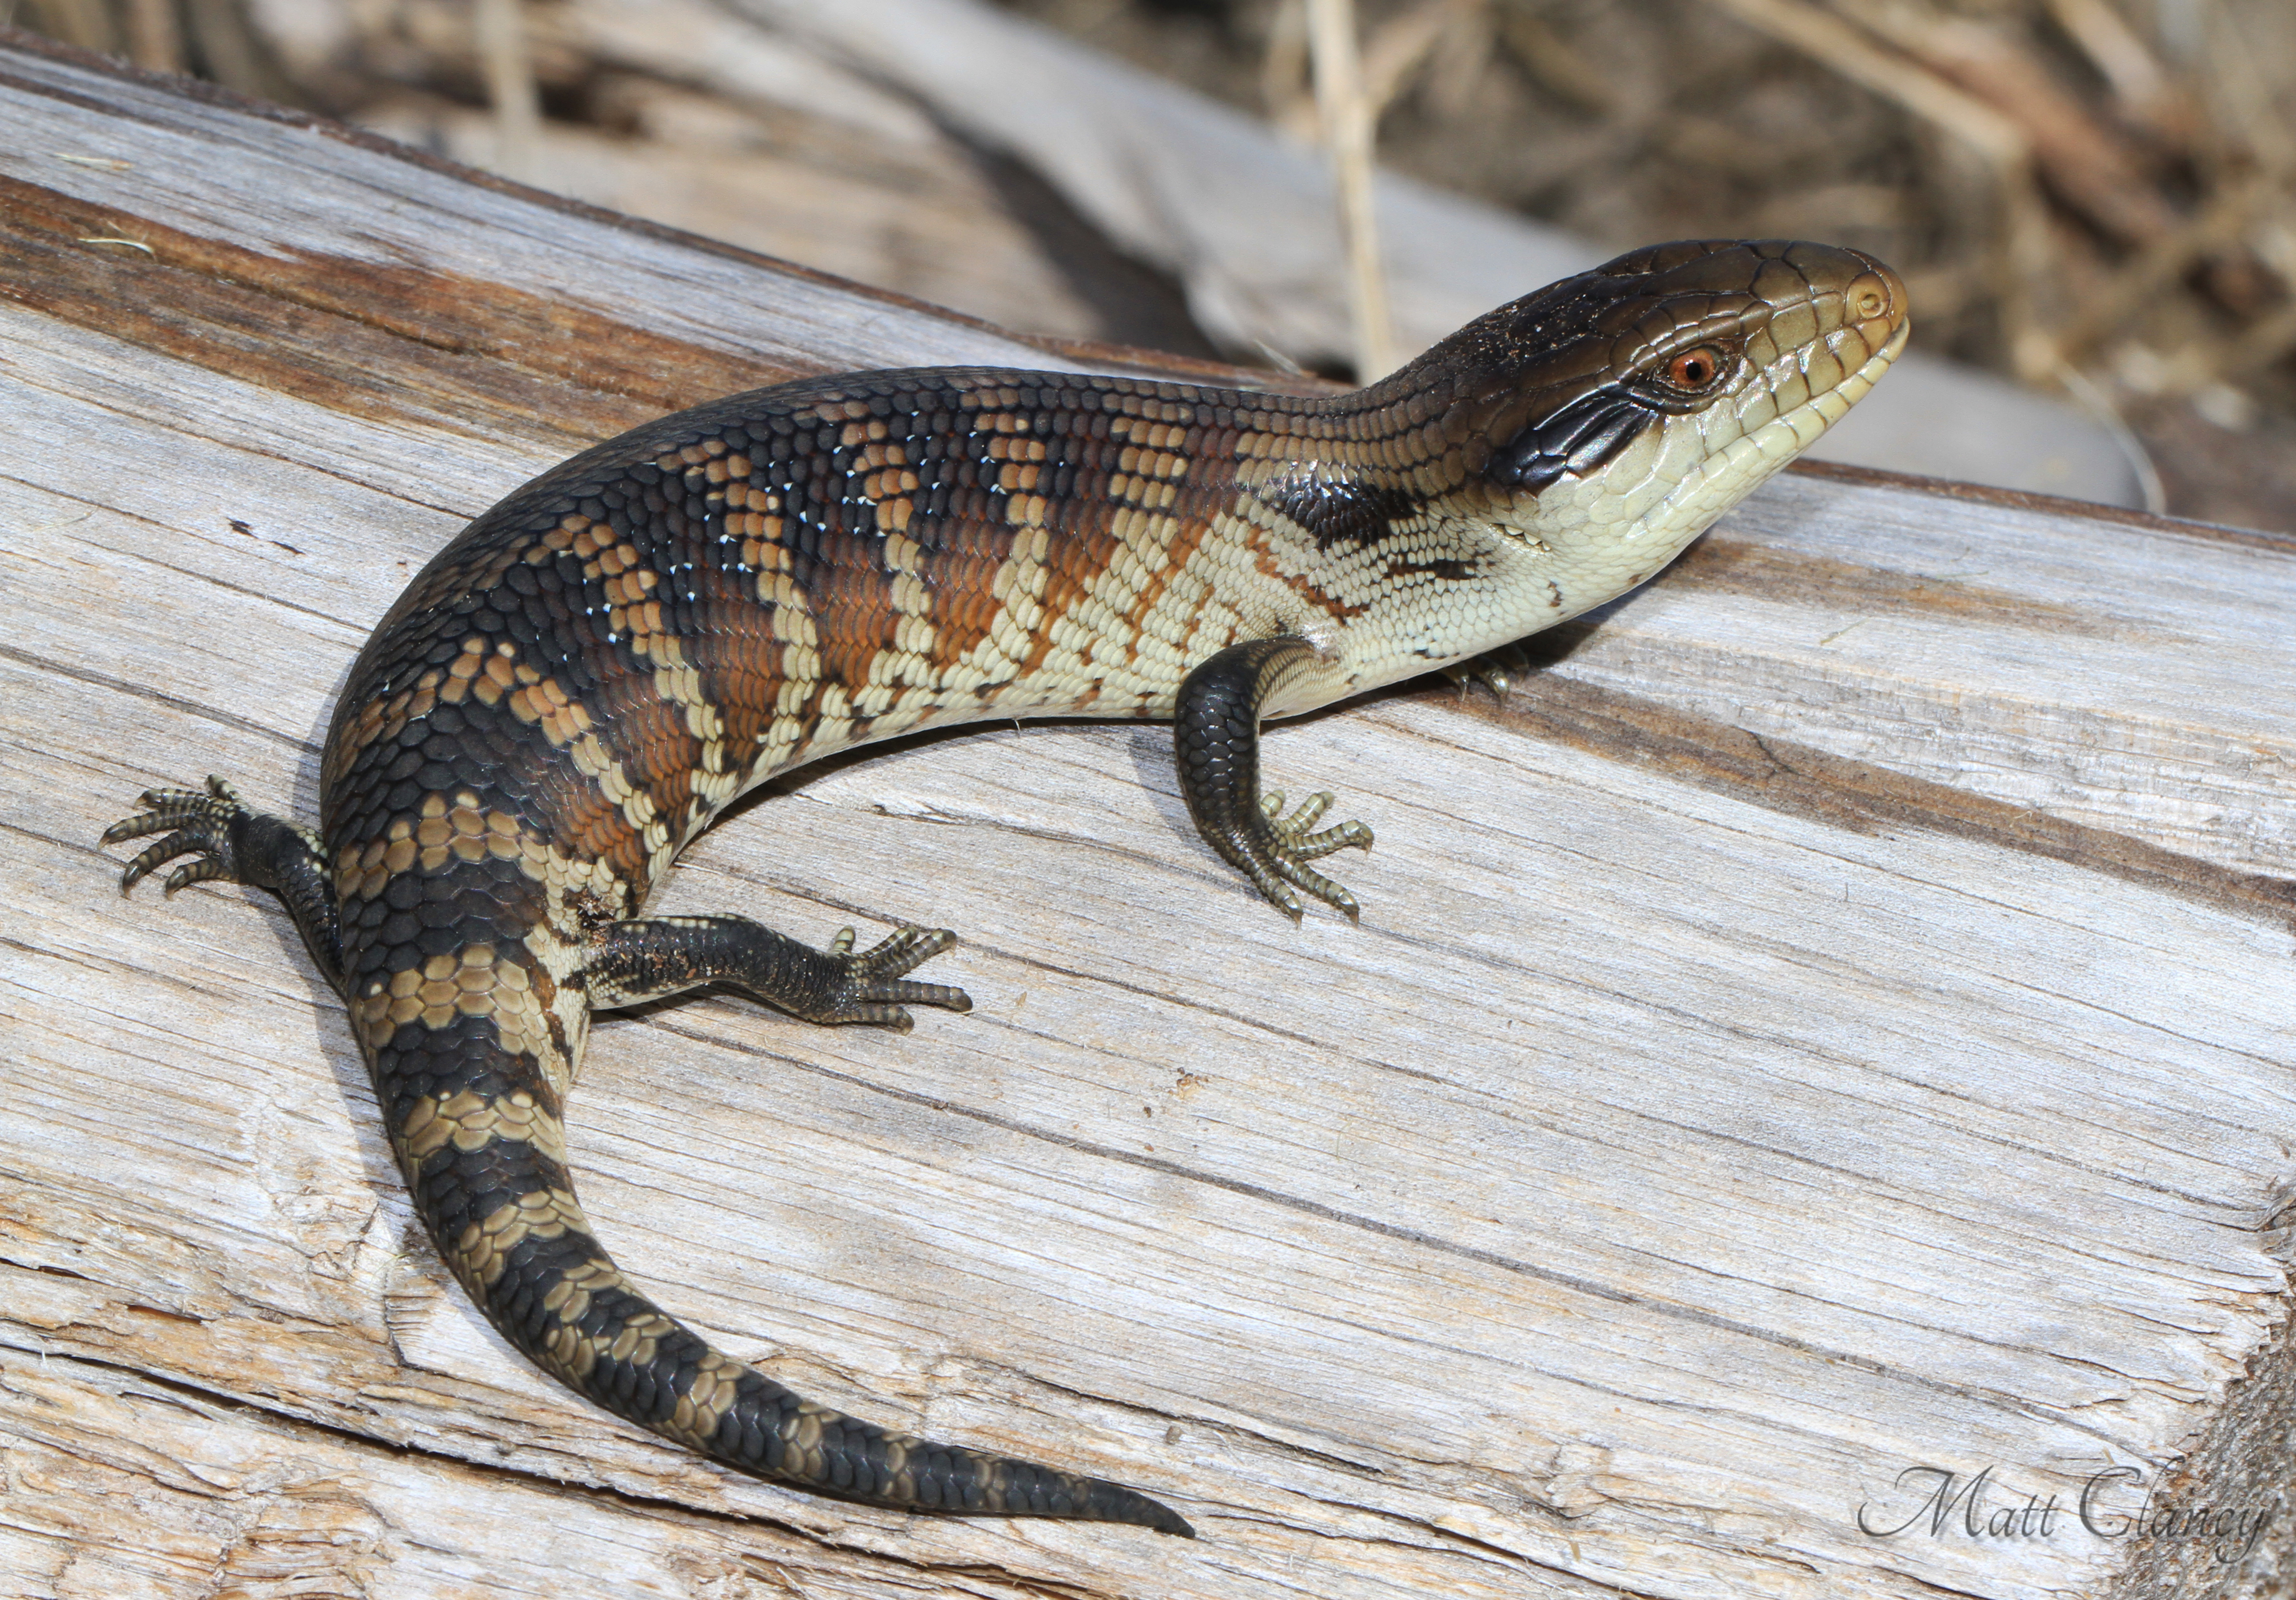 a description of the blue tongued skink The tiliqua complex blue-tongued skinks comprise the australasian genus tiliqua, which contains some of the largest members of the skink family (scincidae)they are commonly called blue-tongued lizards or simply blue-tongues in australia.